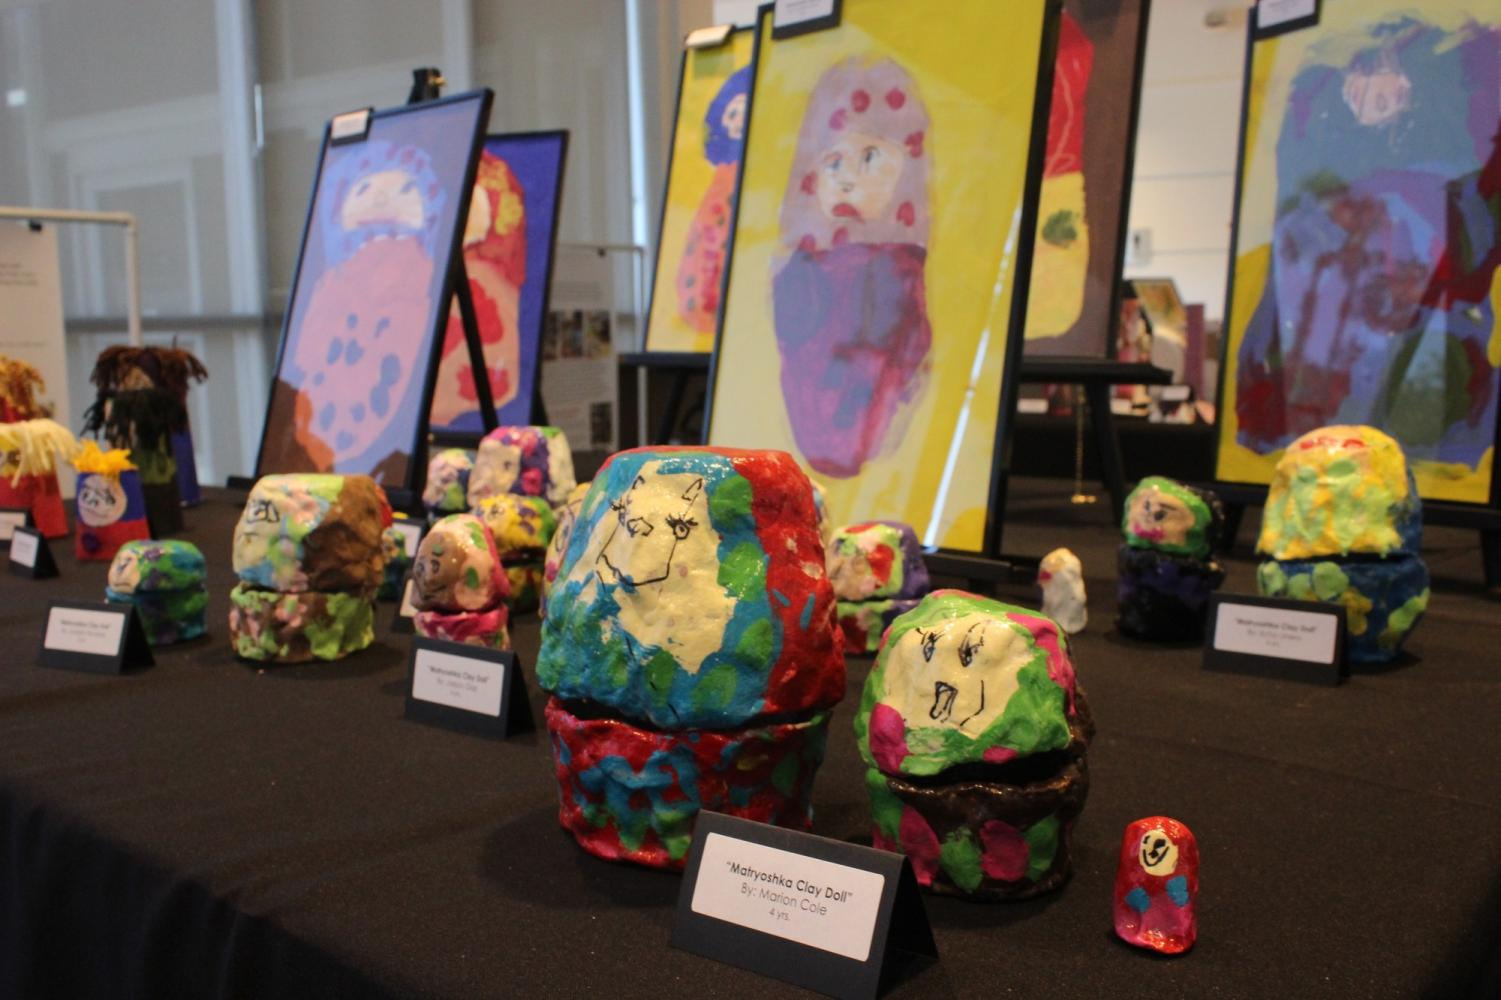 Children in the Cerritos College Child Development Center created various art projects on display. The Children's Voices exhibit was held in the Student Center on April 17-20.